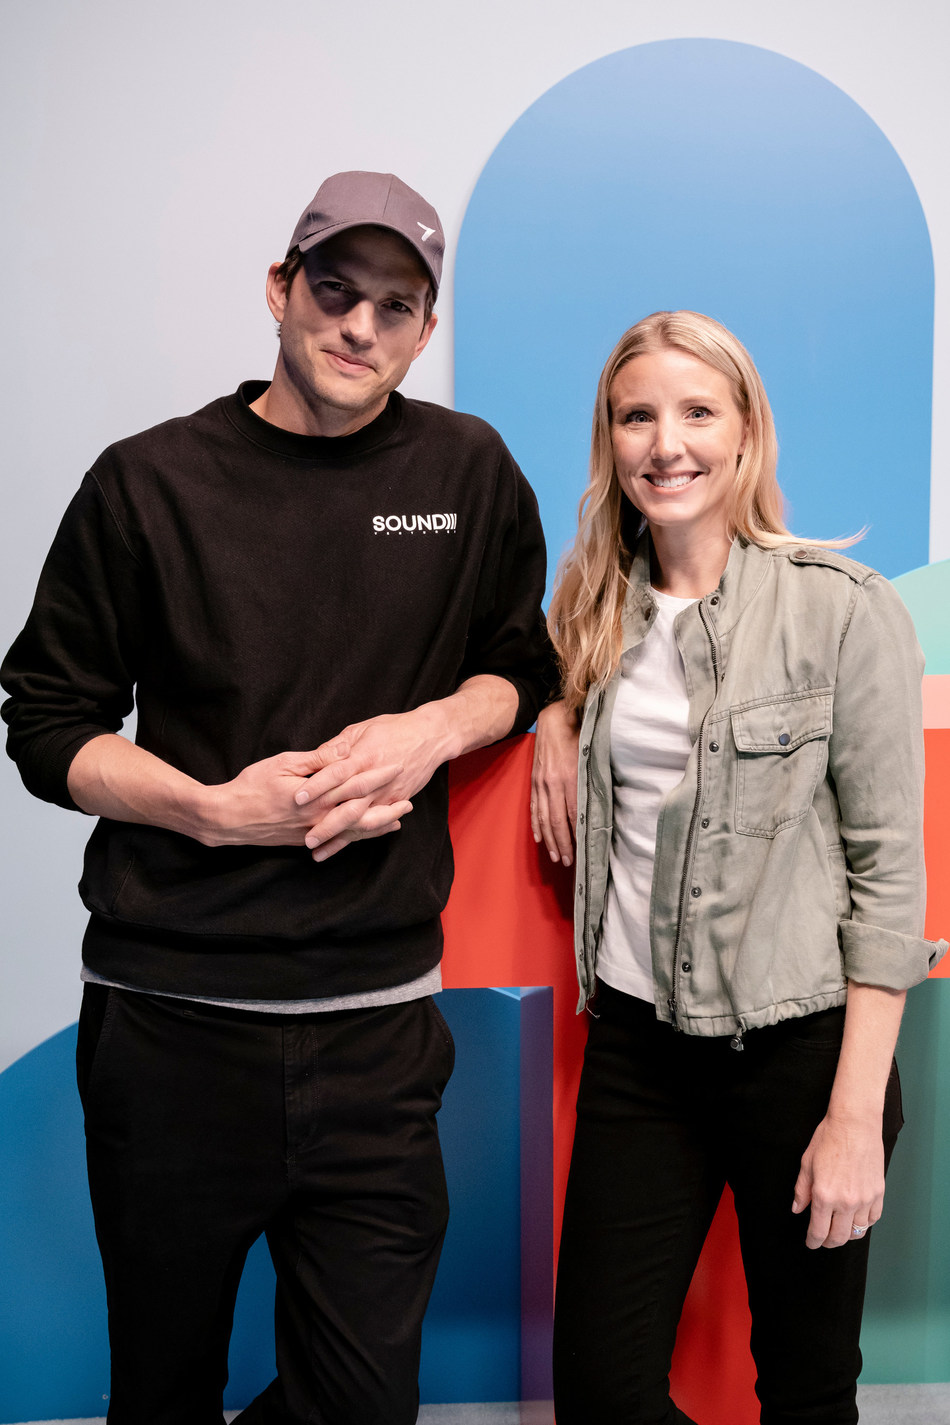 Ashton Kutcher, Co-Founder, Thorn and Julie Cordua, CEO, Thorn - at TED 4.16.19 Photo credit: Bret Hartman / TED